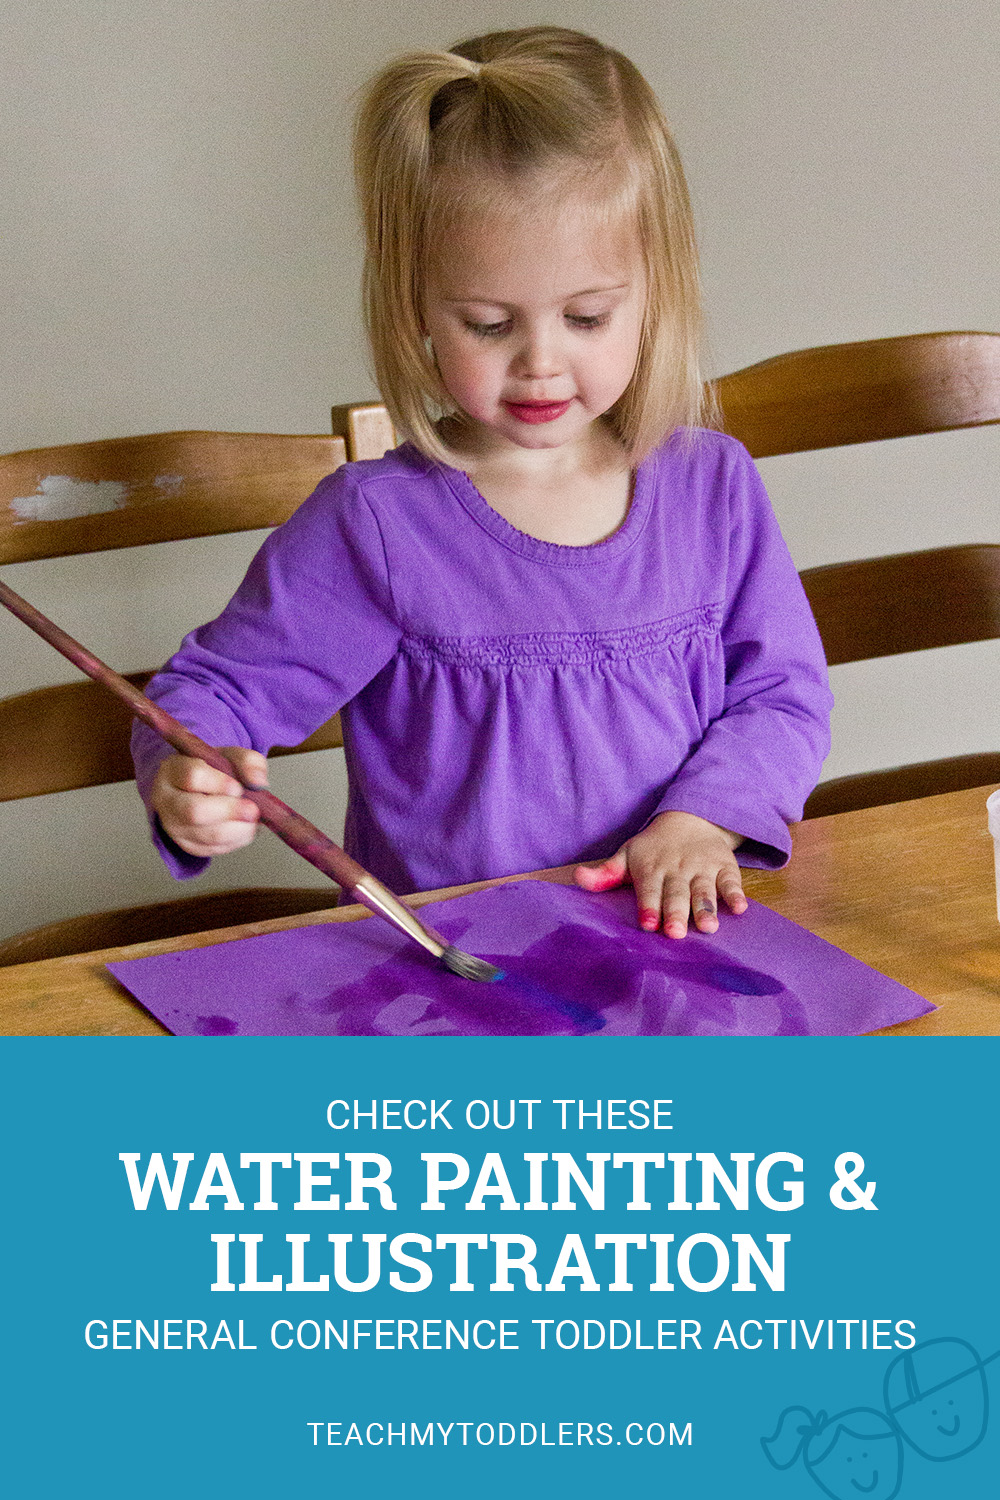 Check out these water painting and illustration general conference toddler activities